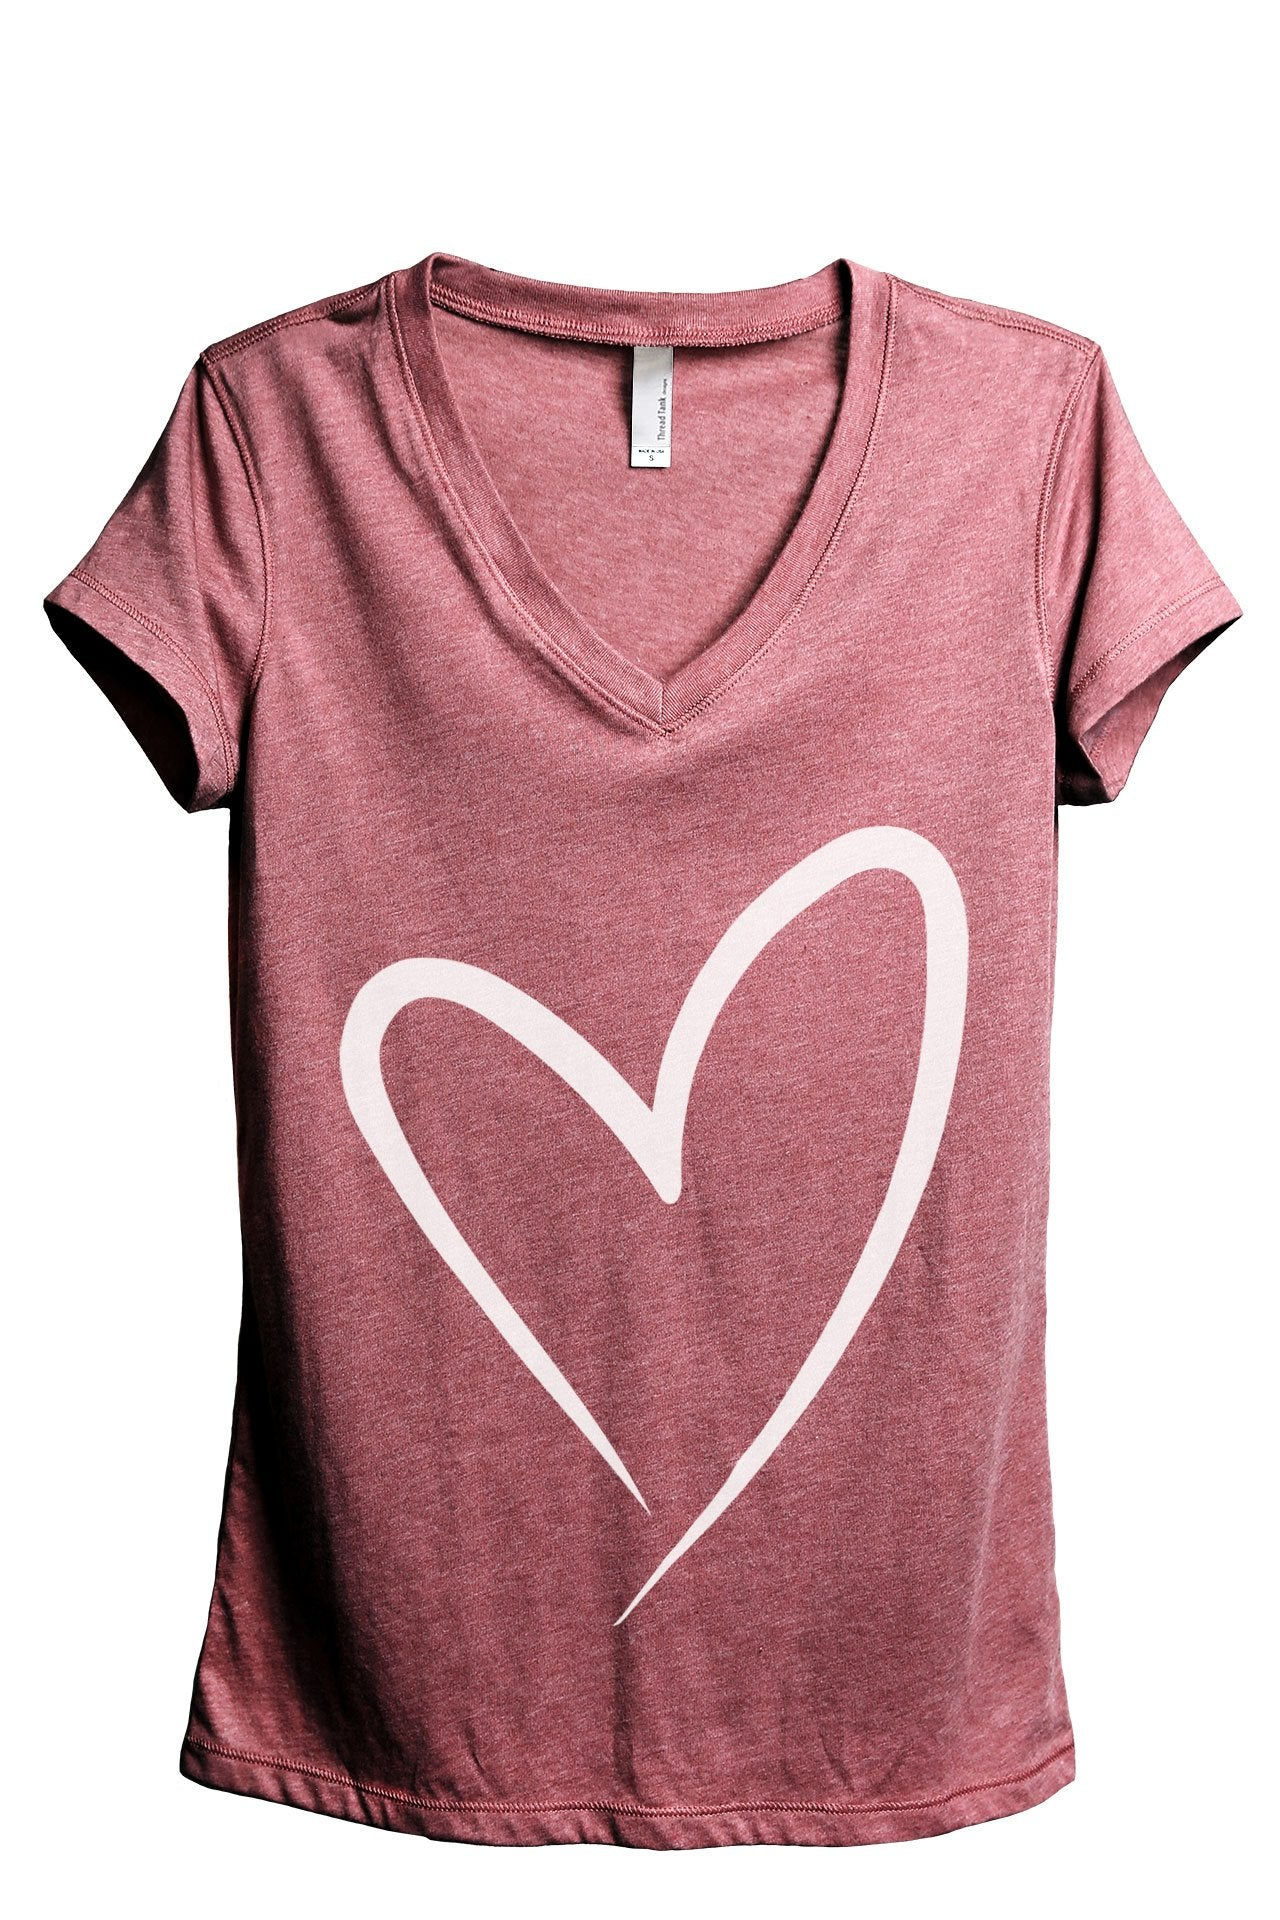 Simply Heart Women's Relaxed V-Neck T-Shirt Tee Heather Black